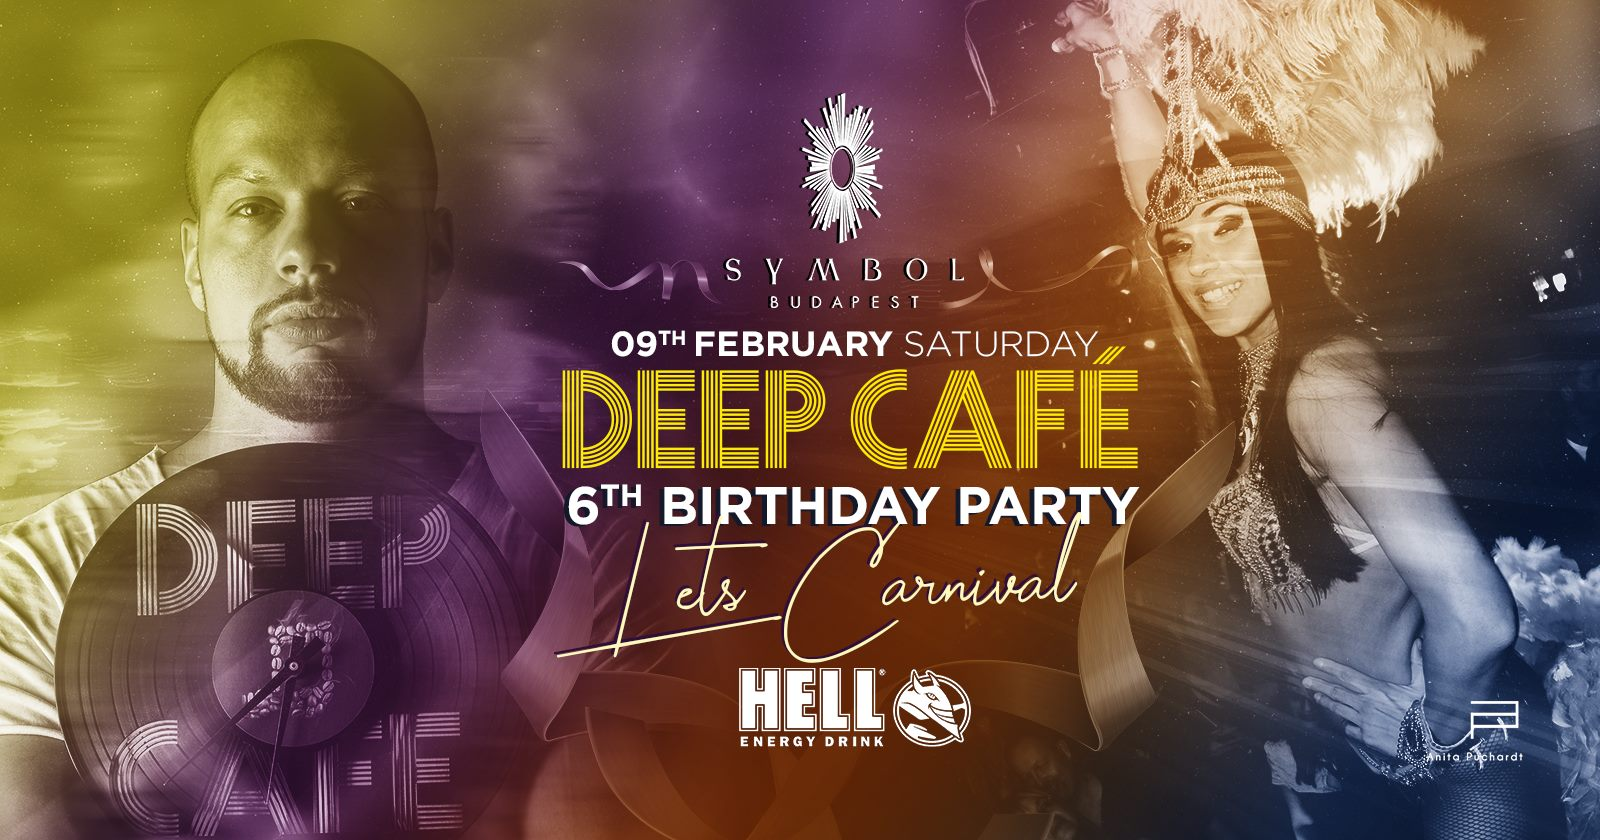 DEEP CAFÉ 6th Birthday Party // Let's Carnival!